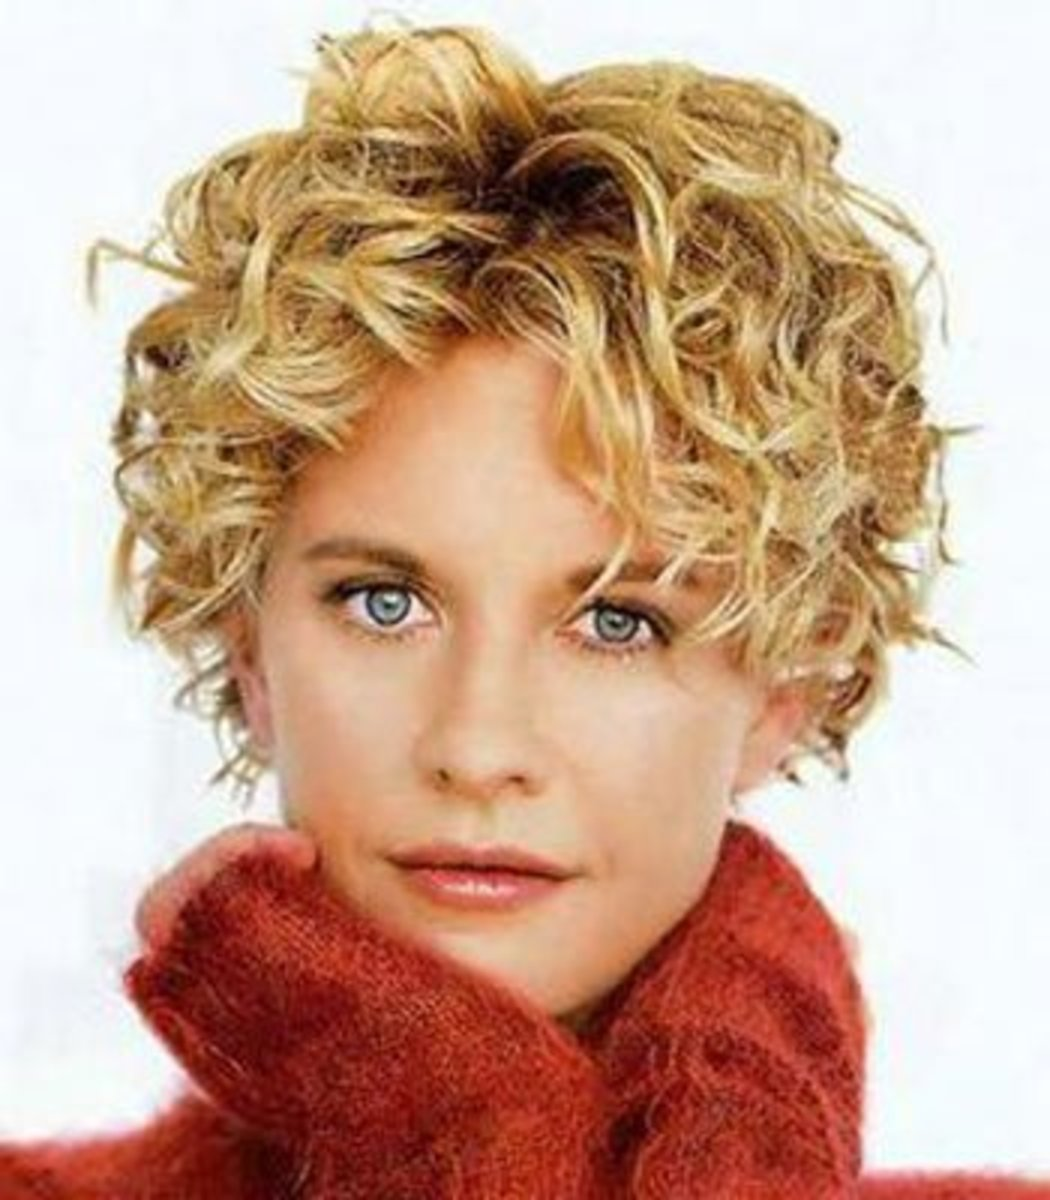 Meg Ryan: cute short curly hair